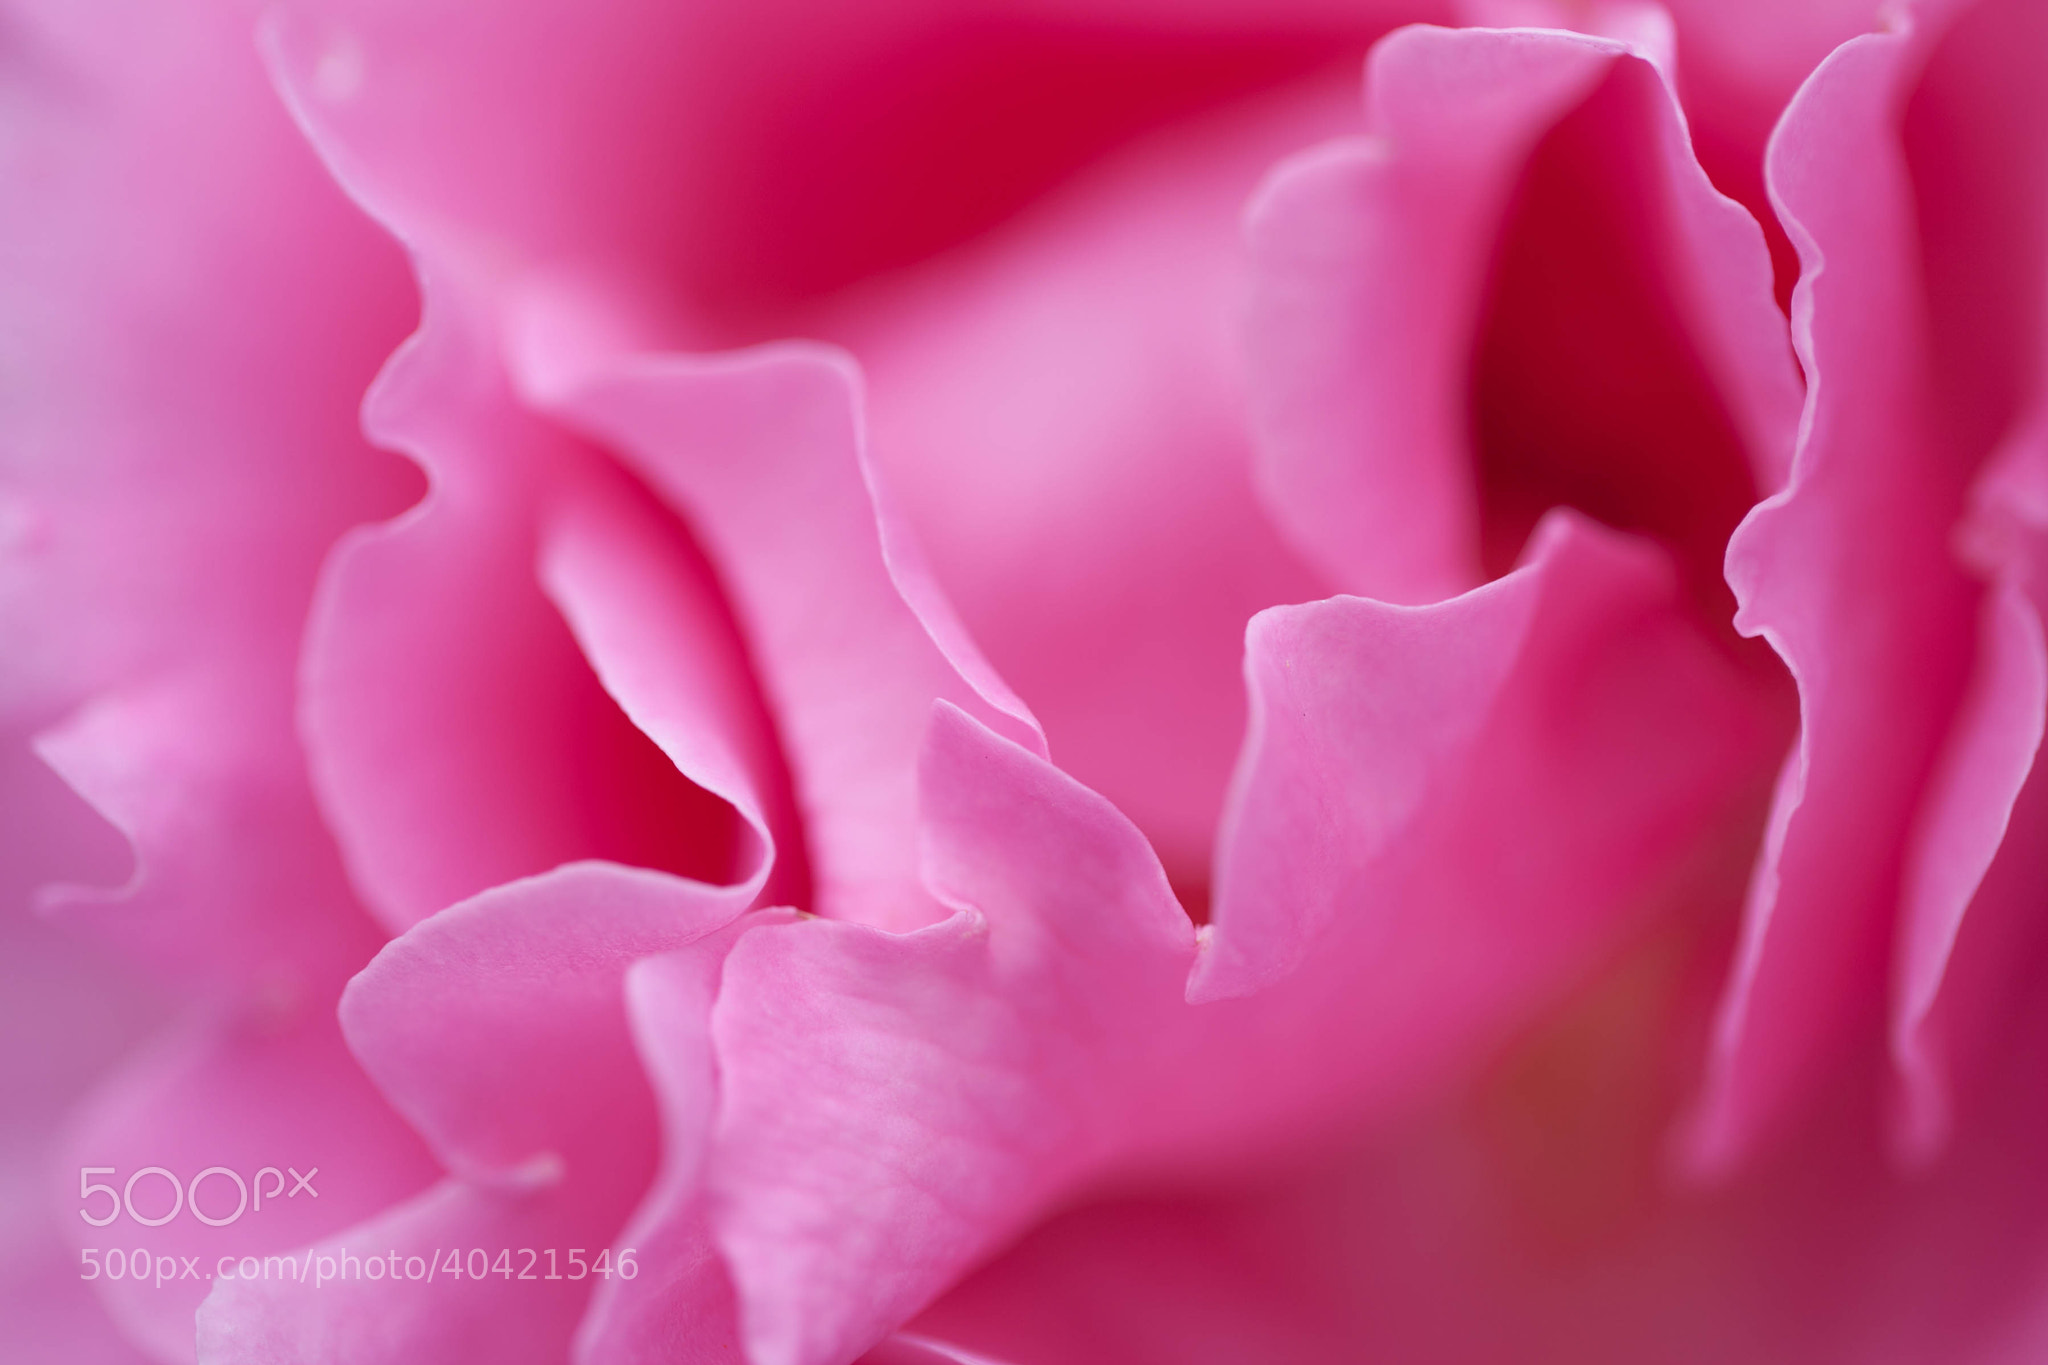 Photograph Macro Pink Rose by Carl Mickleburgh on 500px